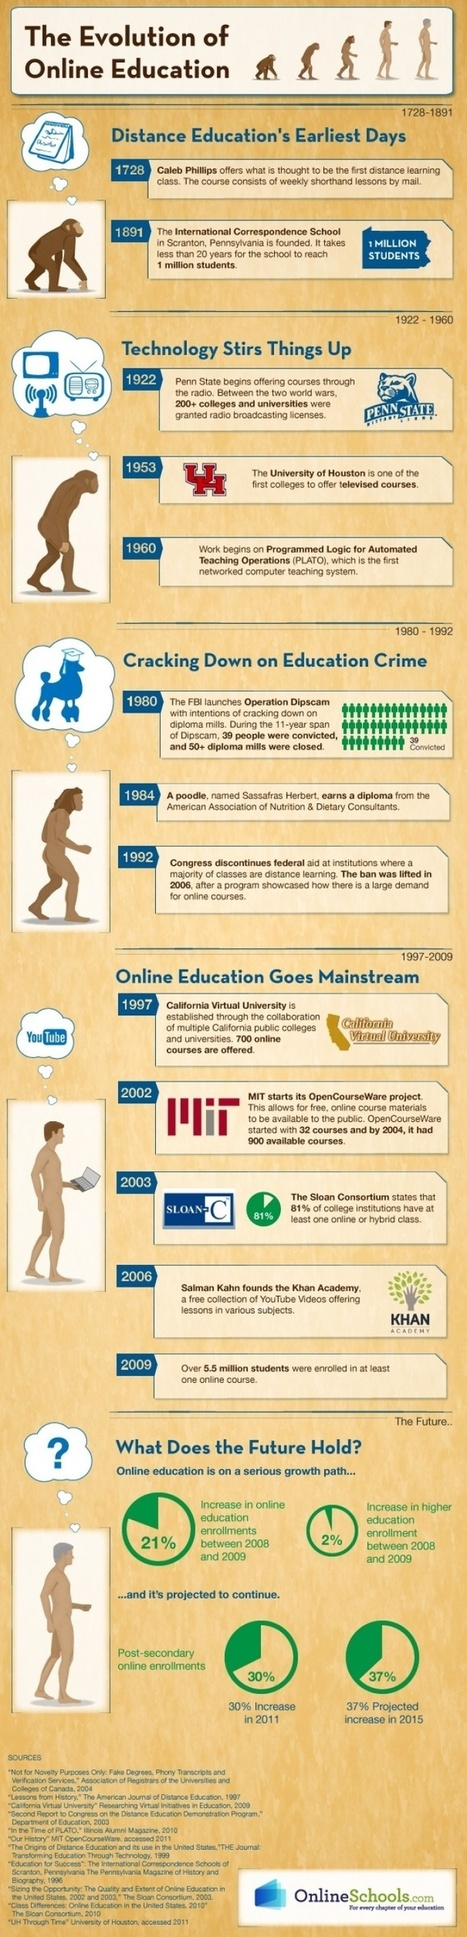 The evolution of online education | Teaching and Learning | Pinterest | Art Museums and Online Education | Scoop.it